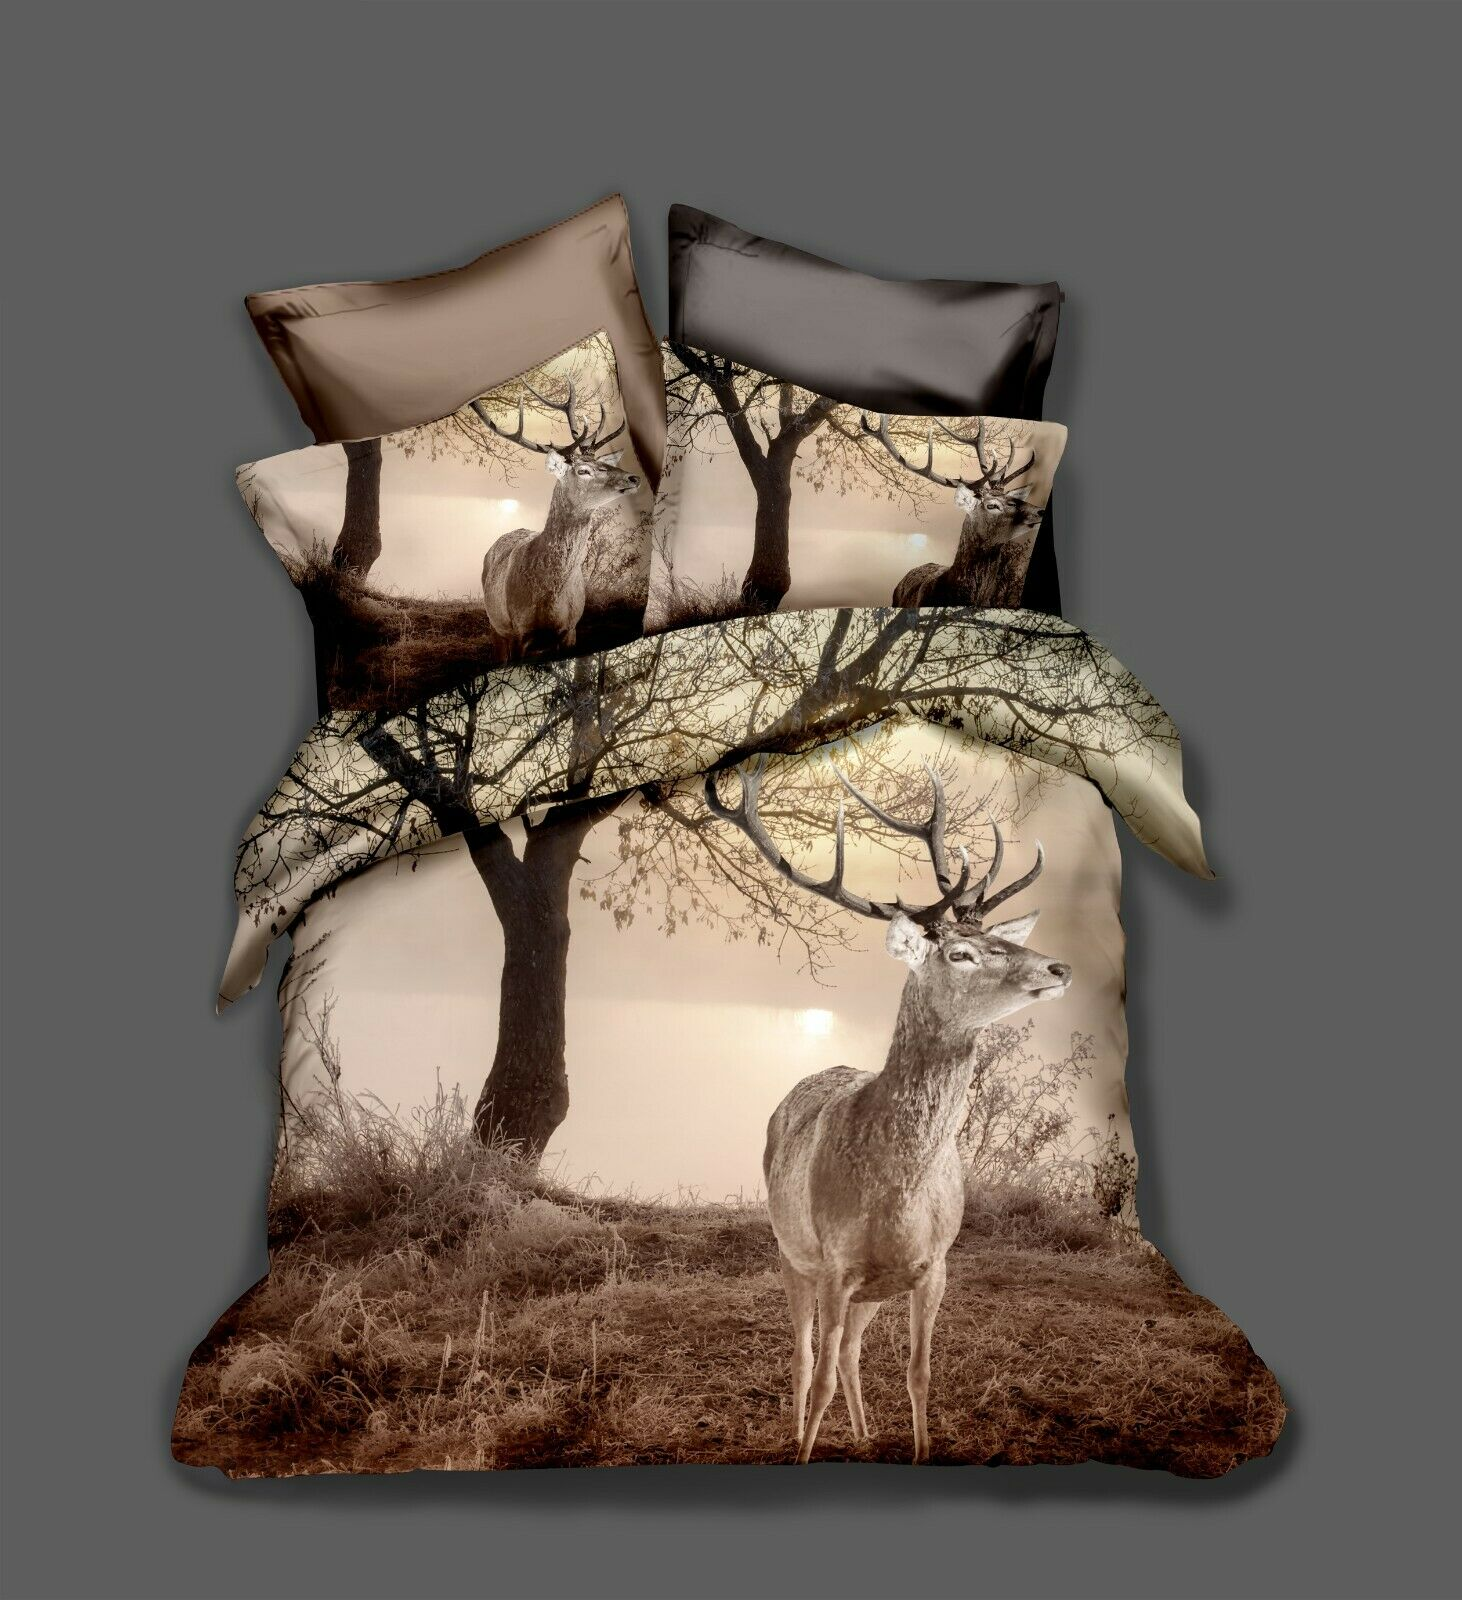 3D Retro Tree Deer courtepointe Cover Set literie couette Cover Single Queen roi 93